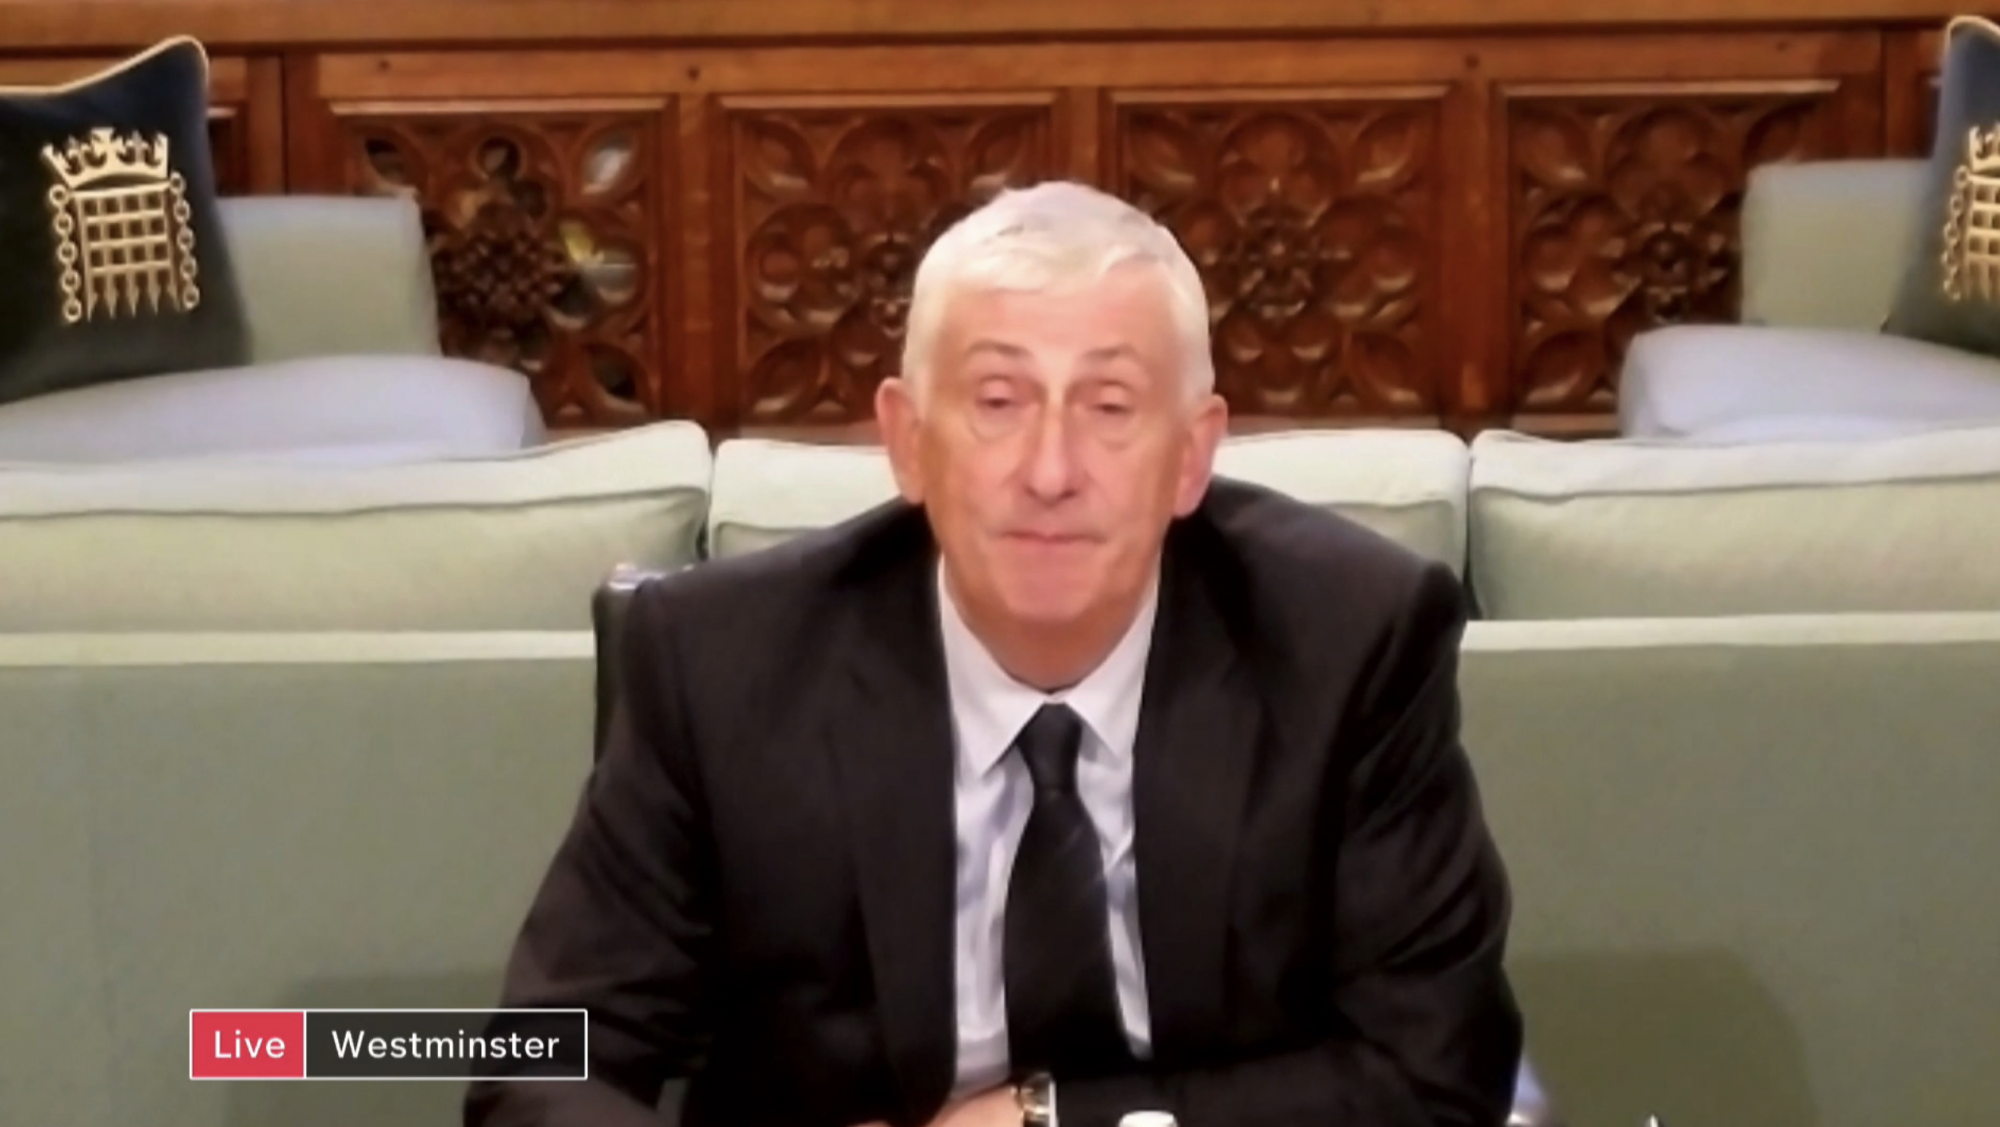 'We've got to protect the future of democracy' – Speaker Sir Lindsay Hoyle - channel 4